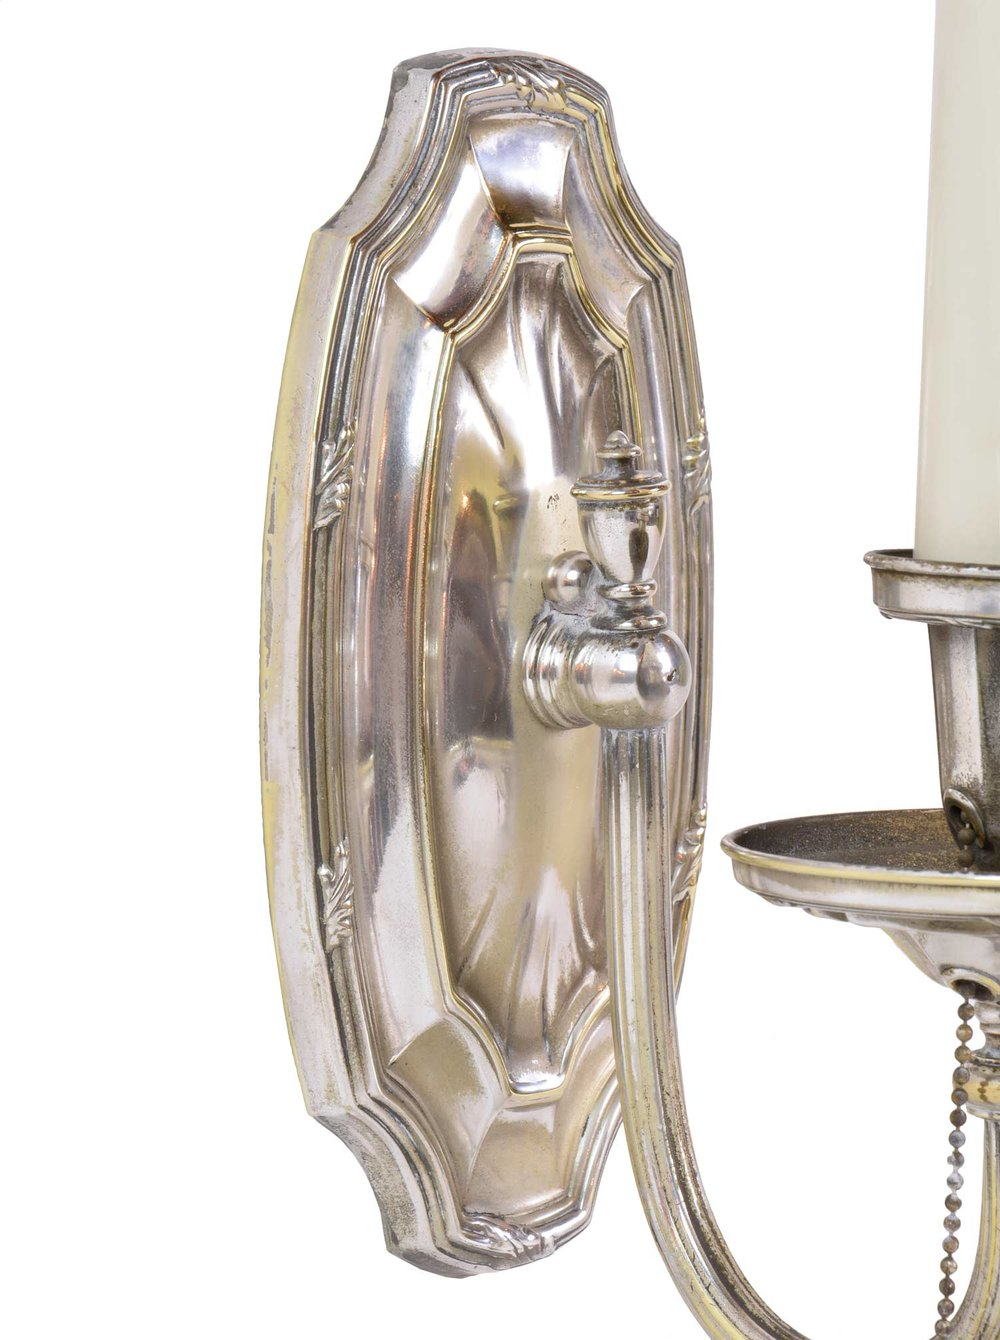 46033-single-arm-silver-sconce-backplate.jpg